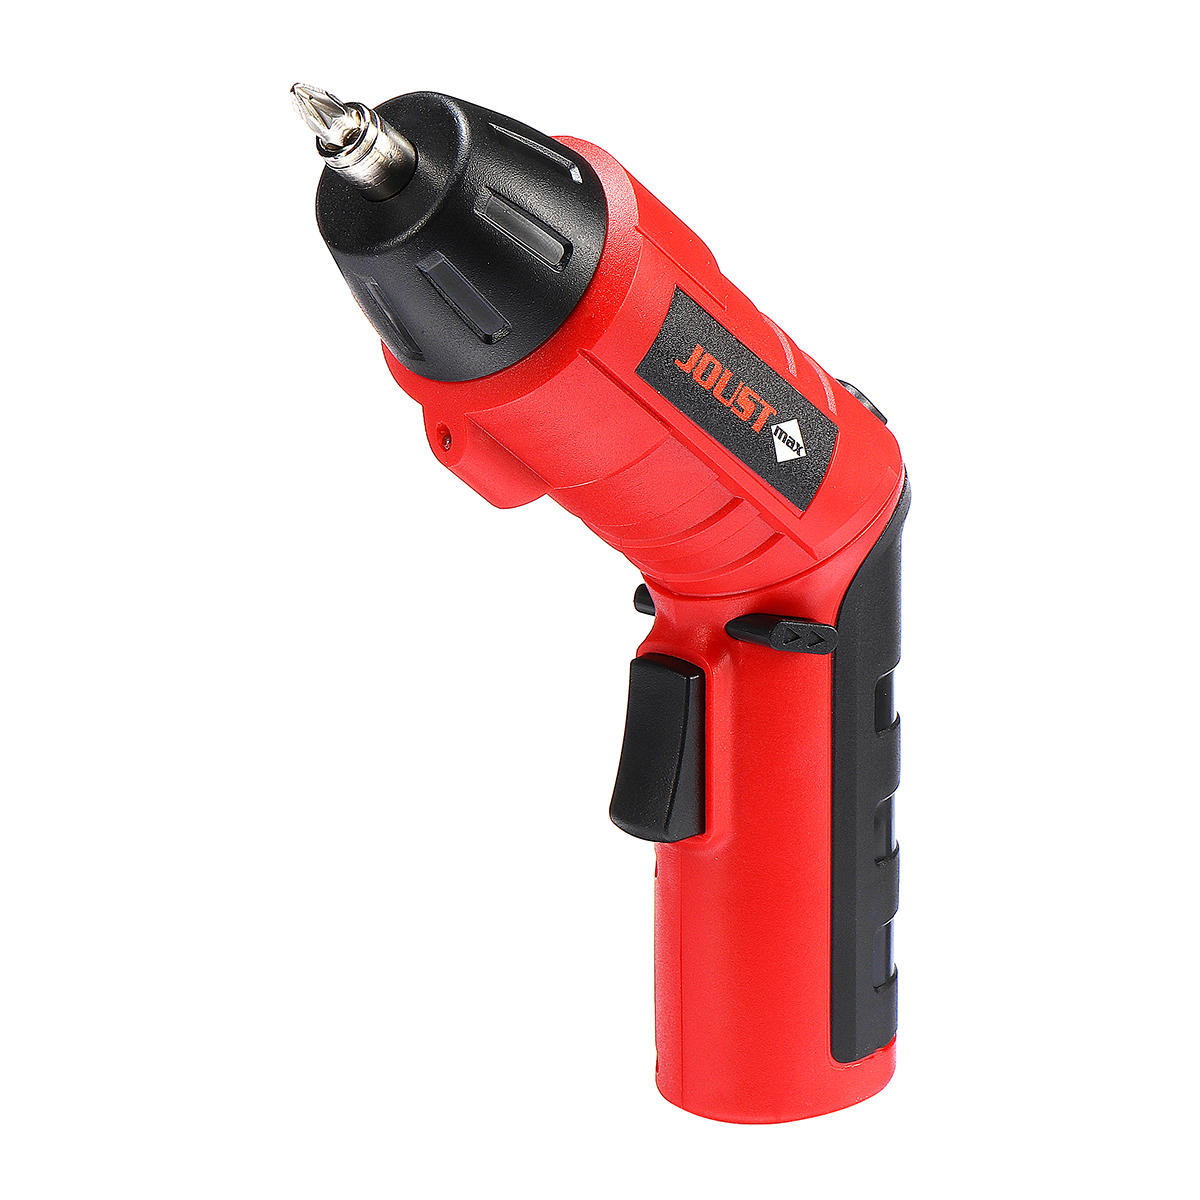 48V Cordless Impact Electric Screwdriver Drill 25+3 Gear Forward/Reverse Switch Power Screw Driver W/ 1 Or 2 Li-ion Battery - 3